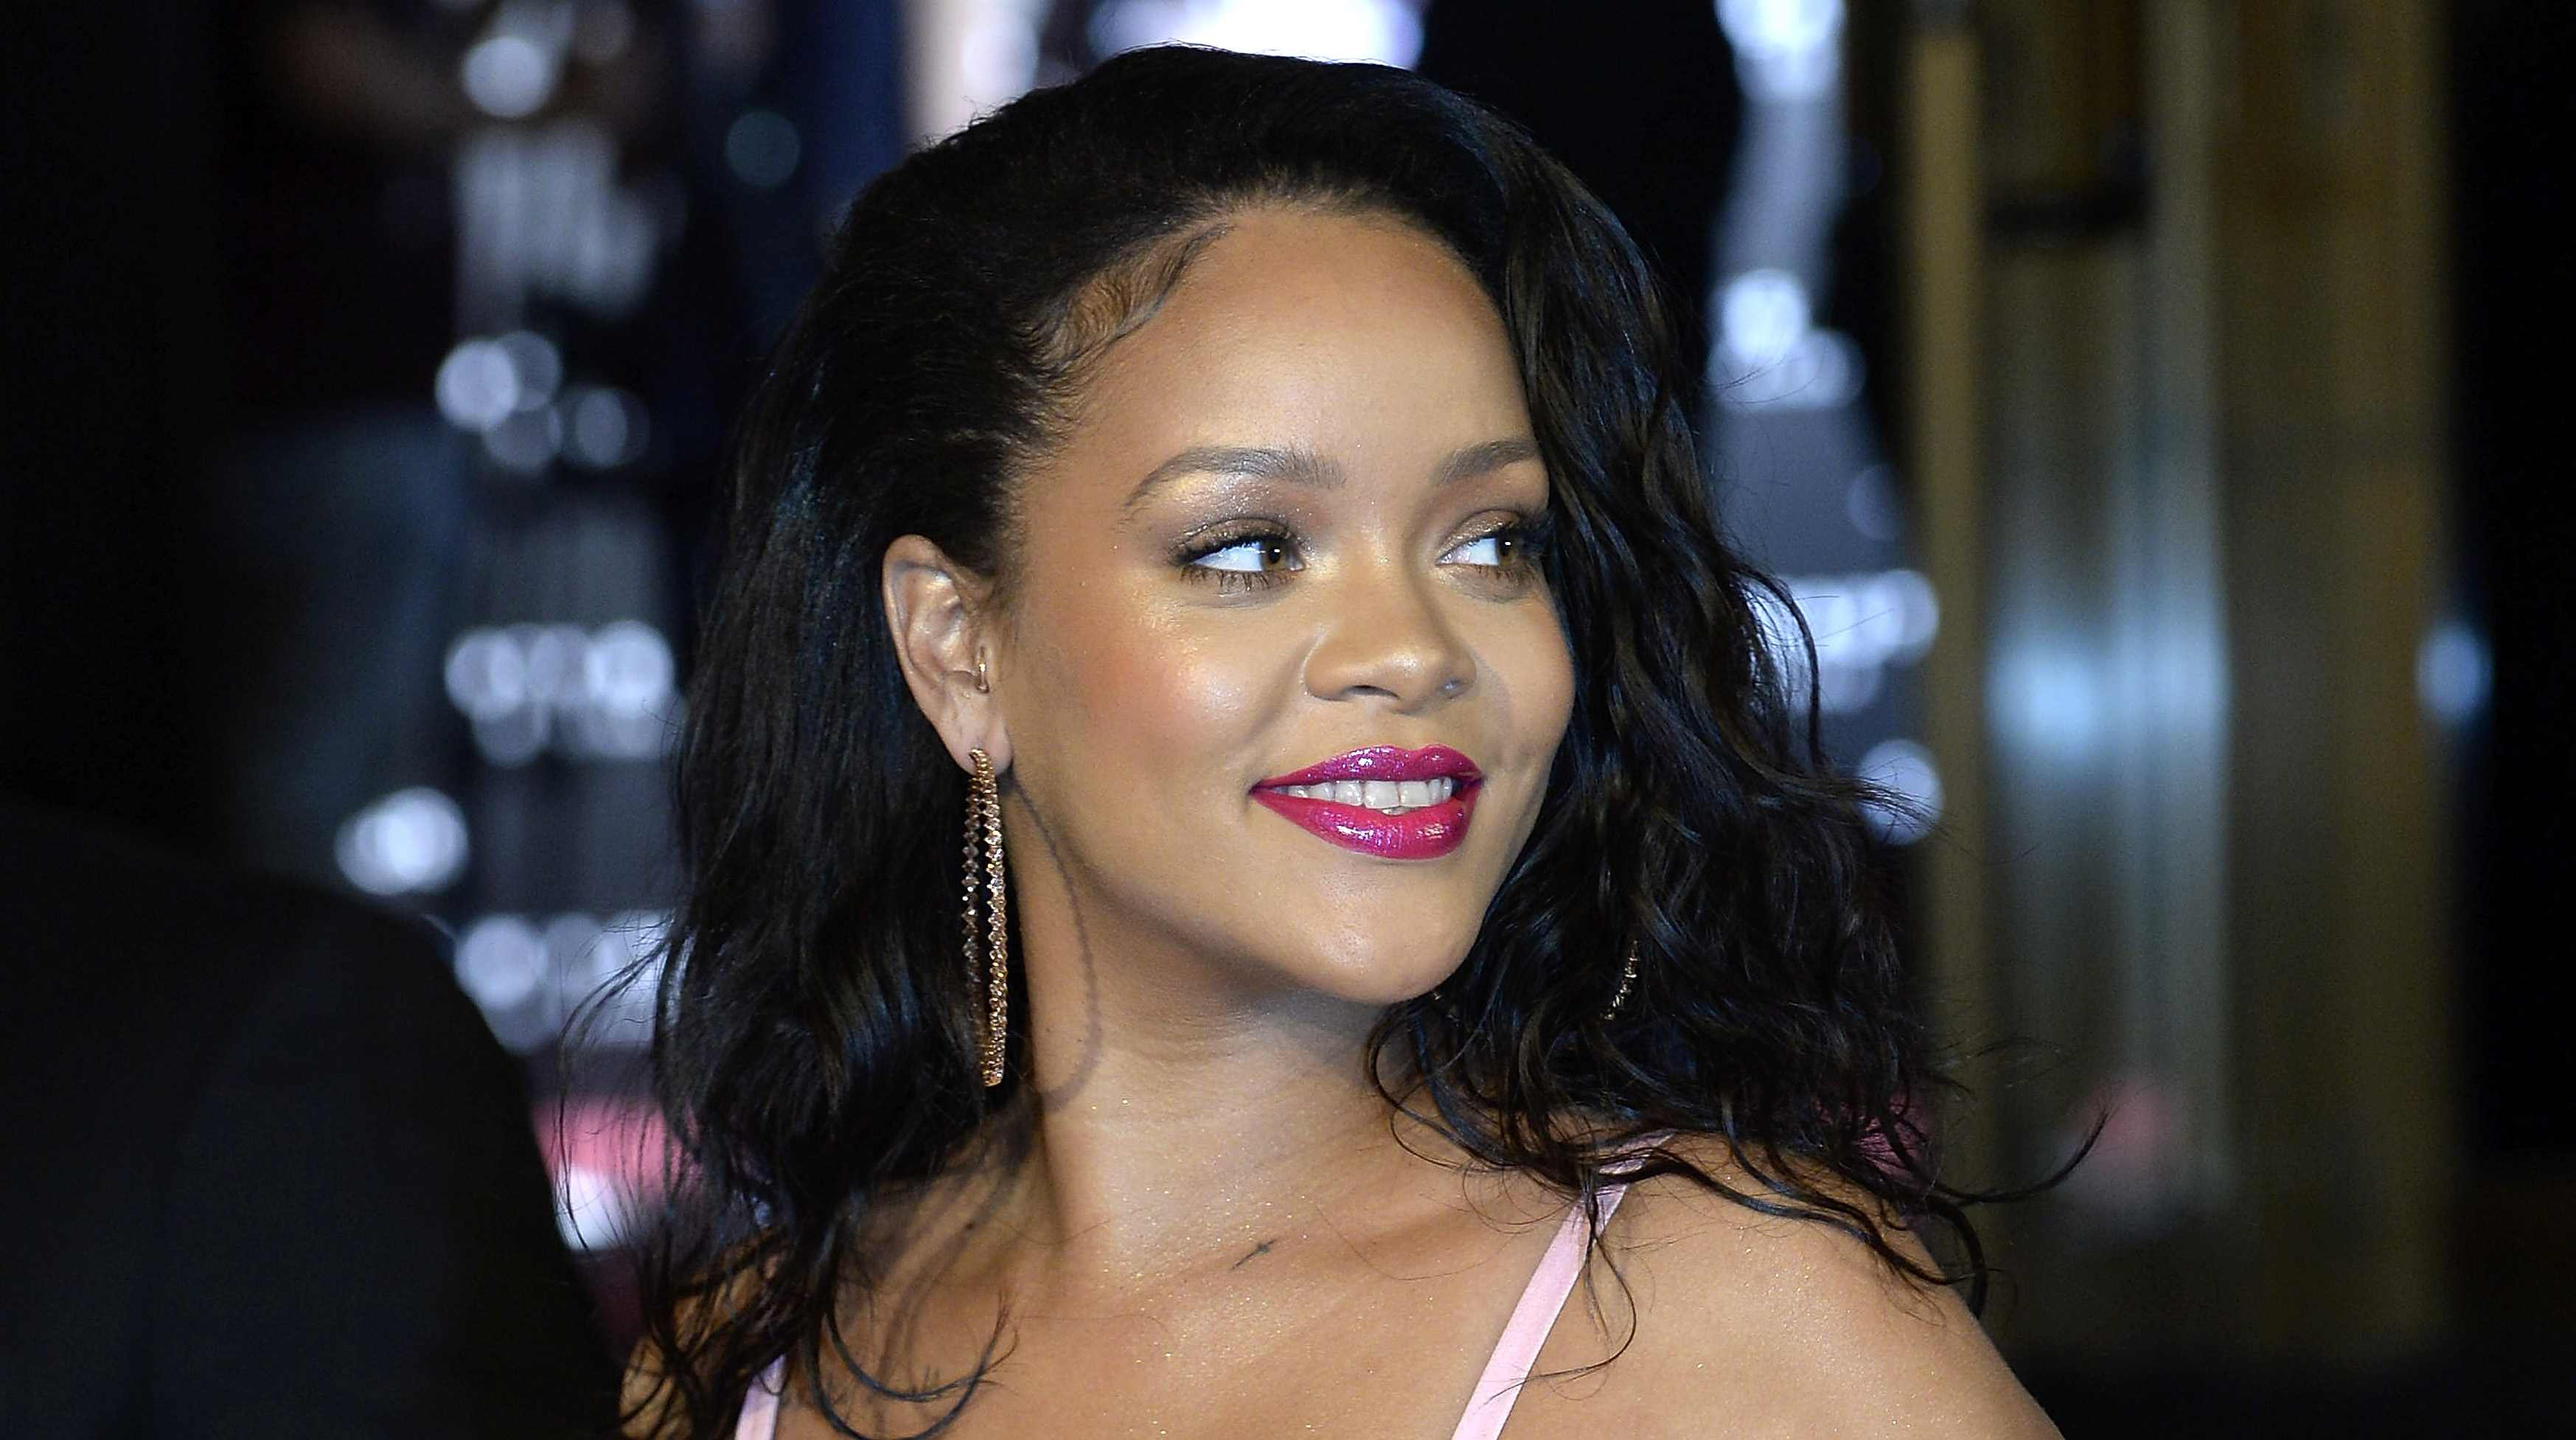 Rihanna attends the Fenty Beauty by Rihanna presentation at Callao Cinemas on Sept. 23, 2017 in Madrid, Spain.